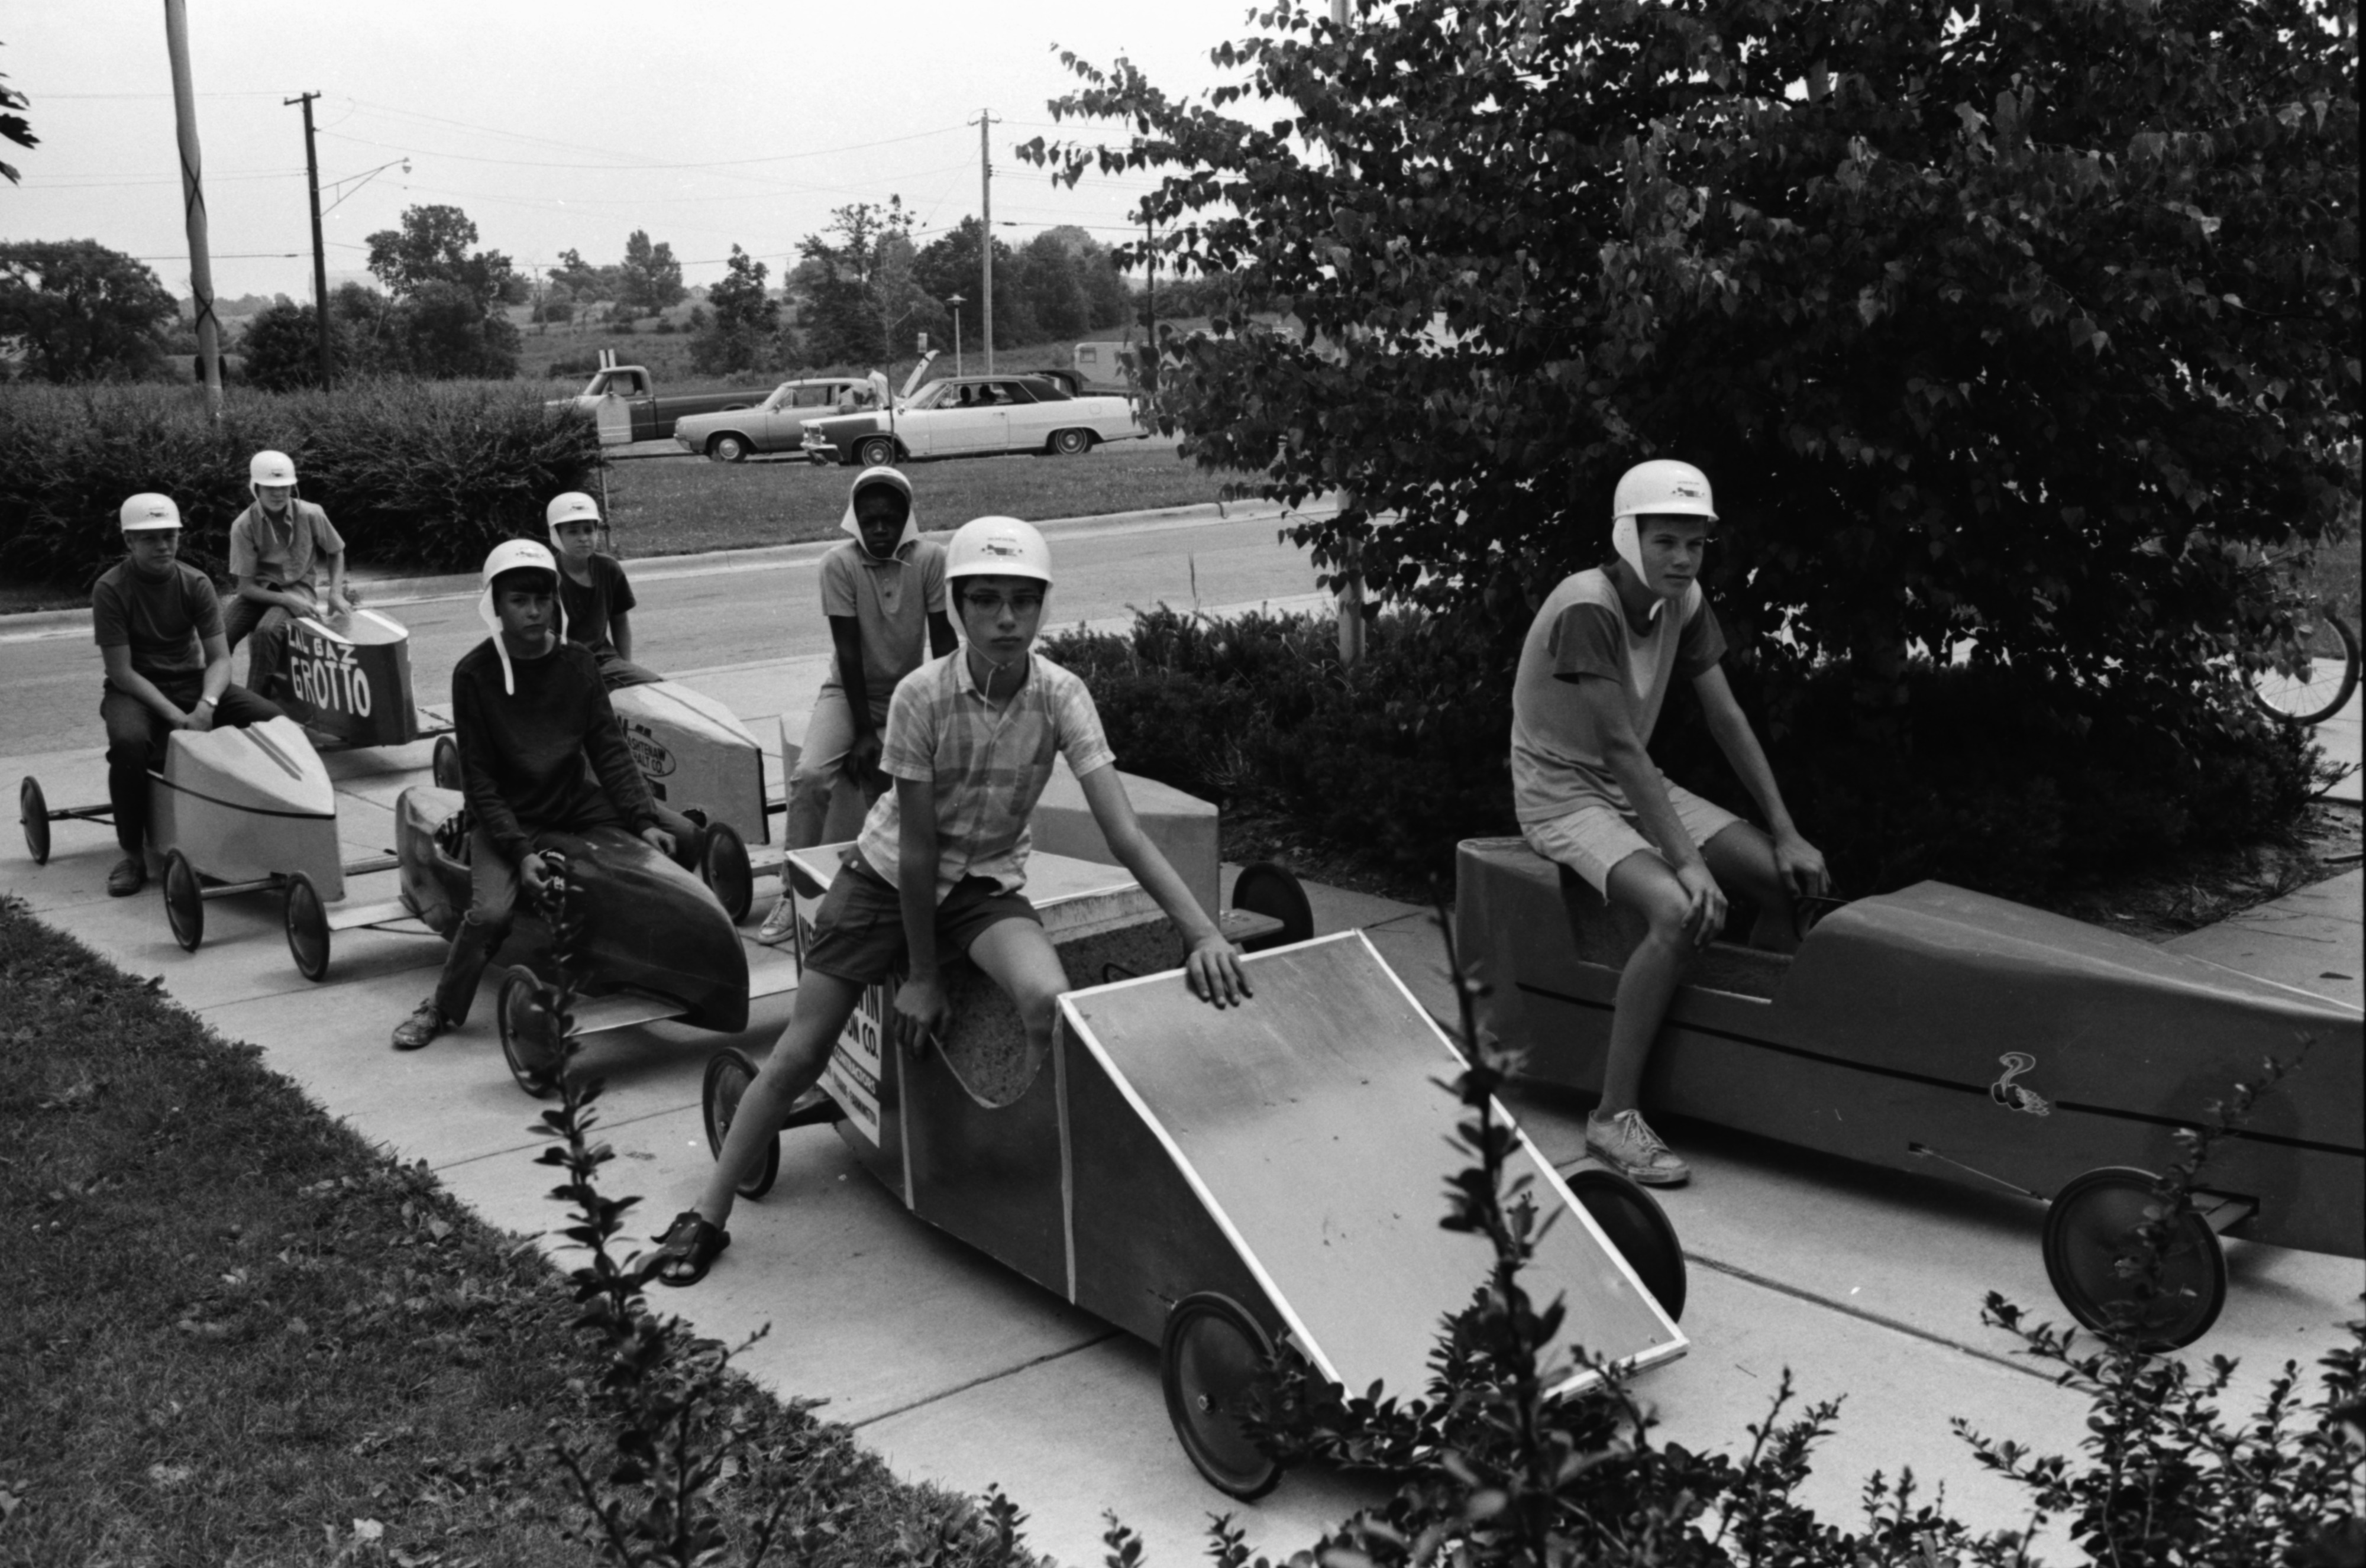 Ready For Soapbox Derby Race, July 1969 image